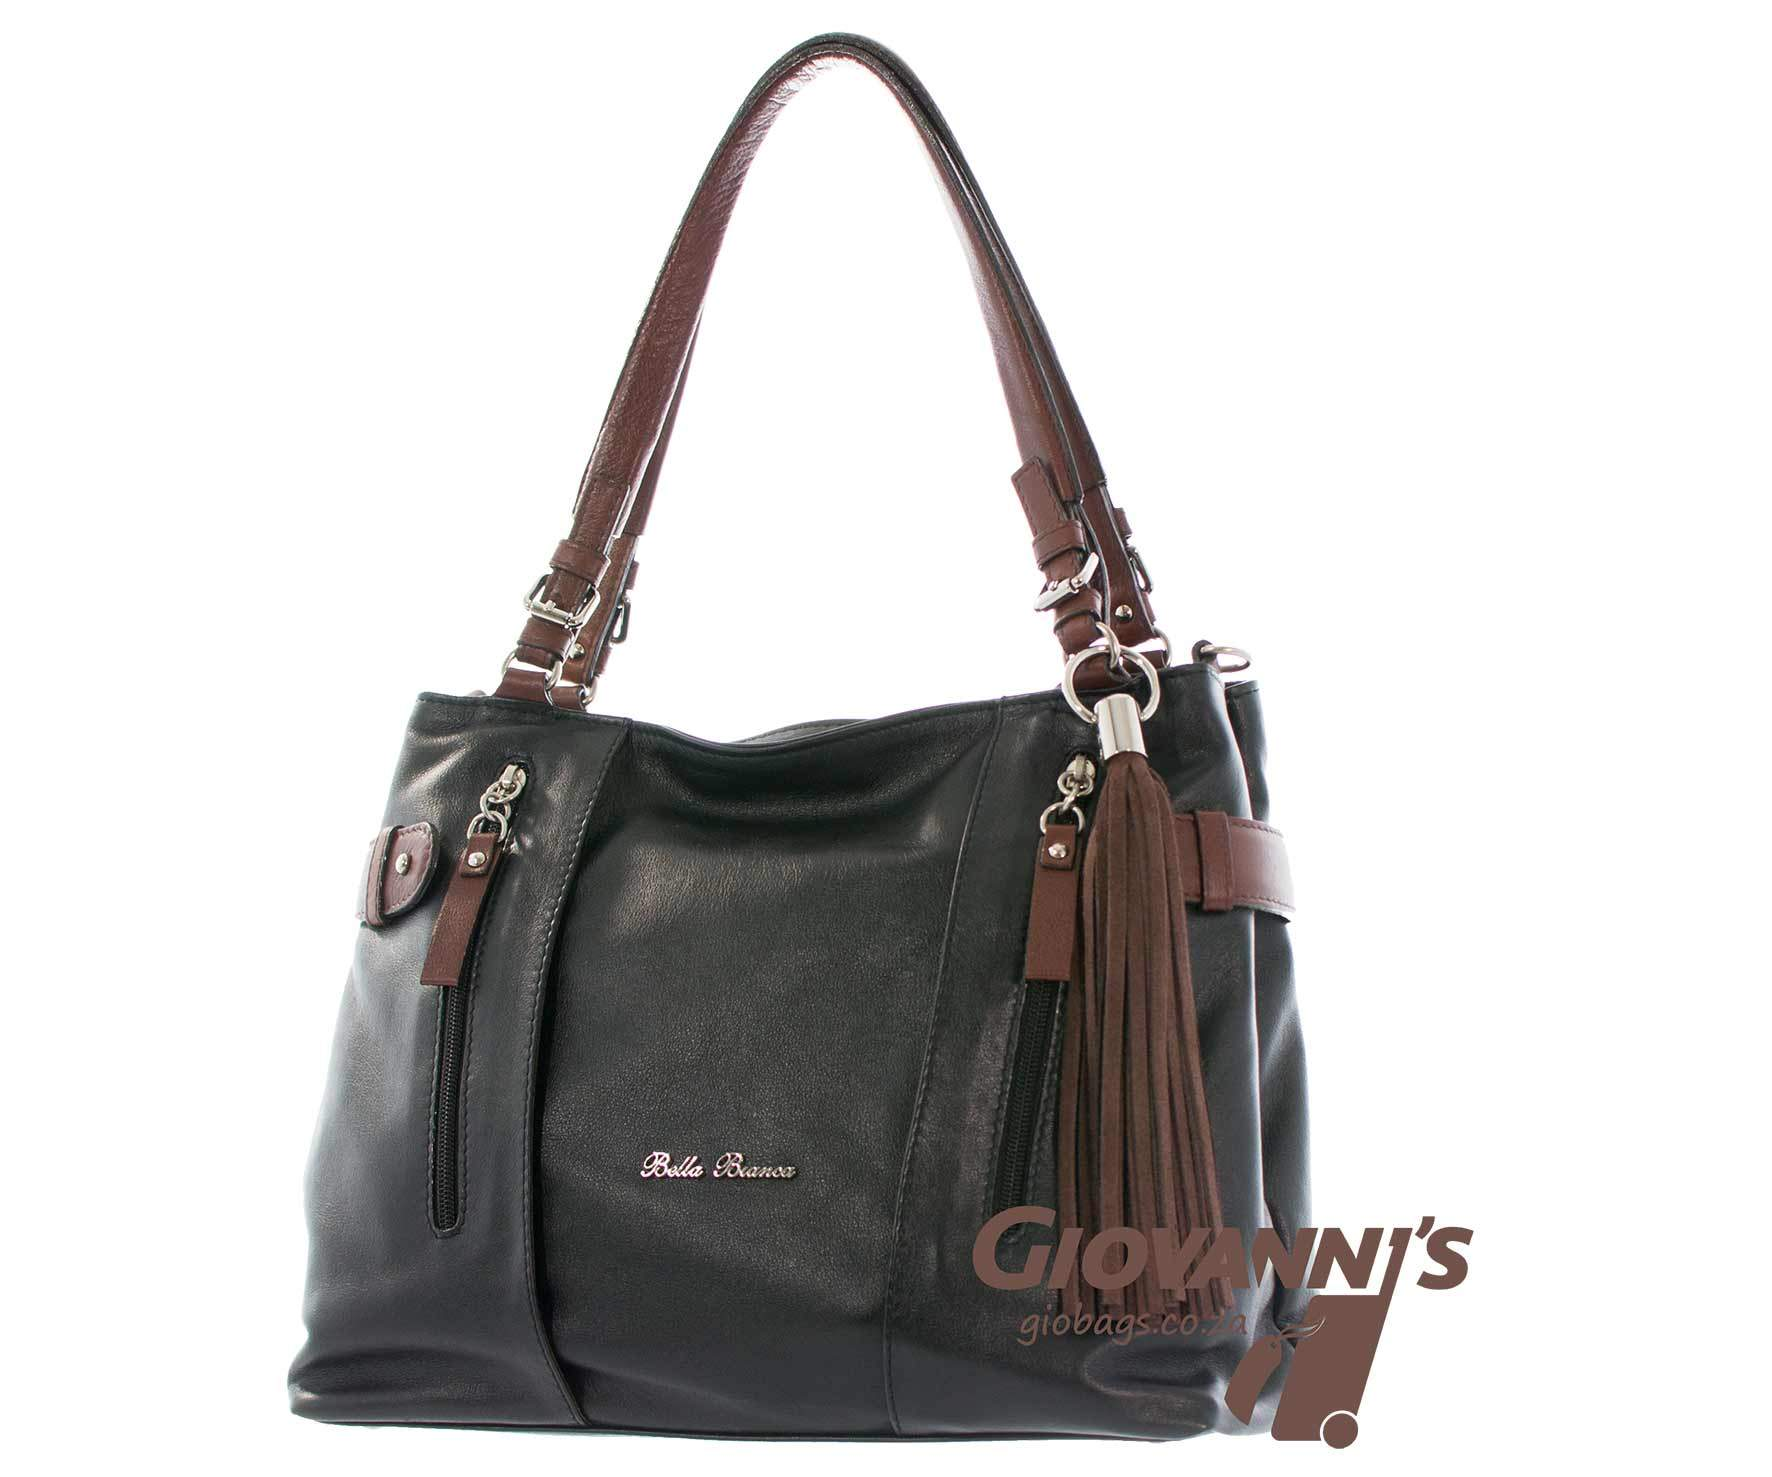 Giobags D-391 Bella Bianca Leather Handbag